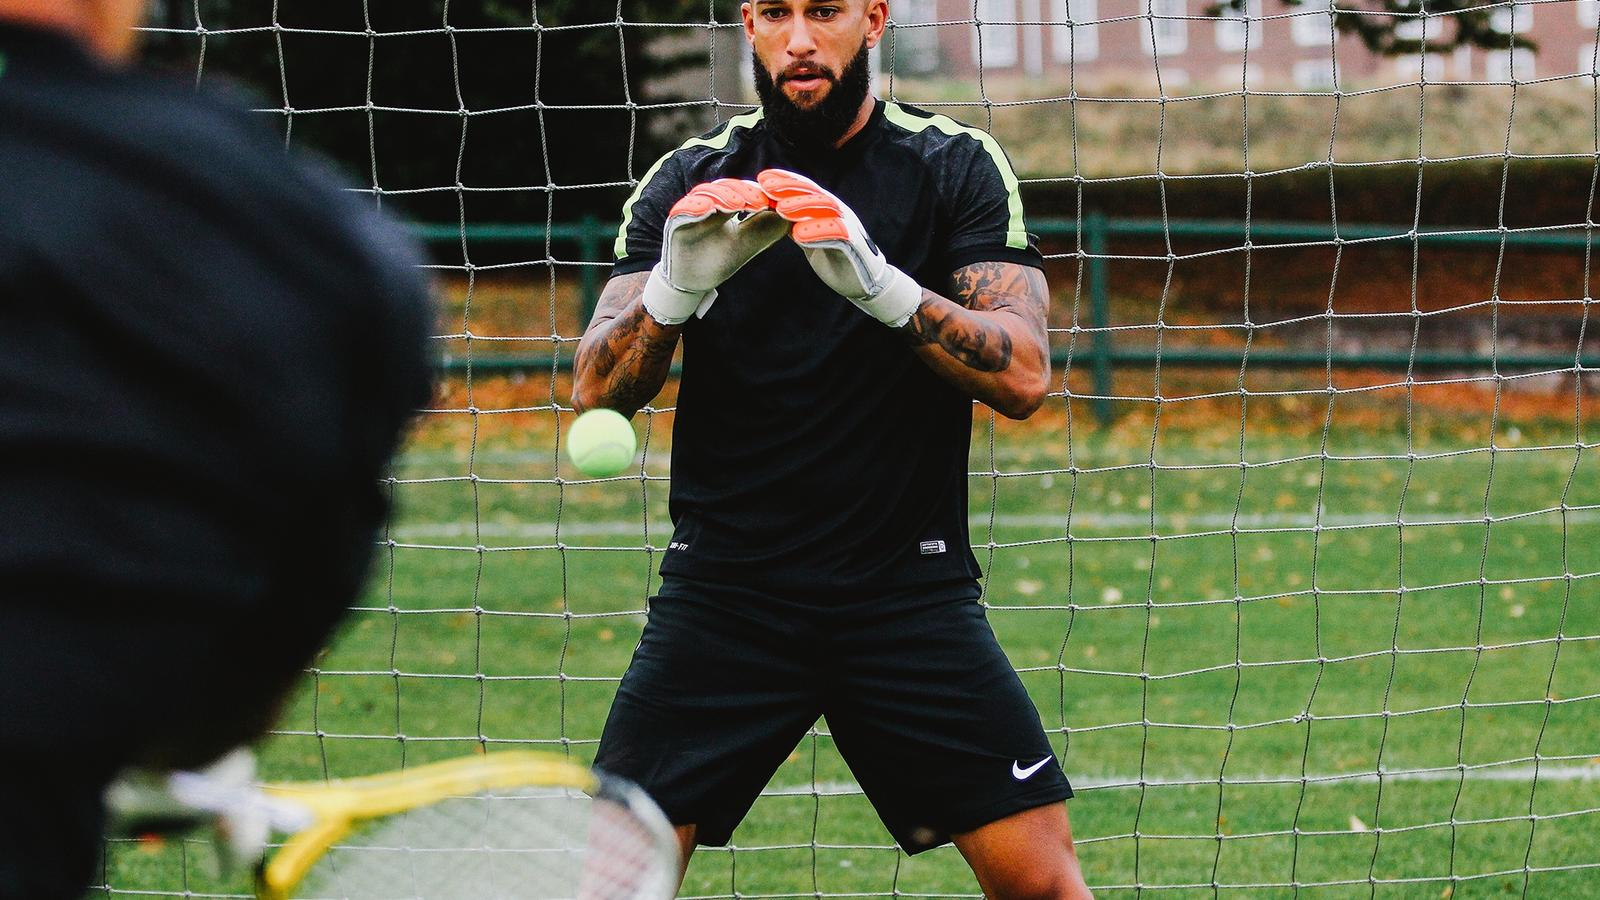 Tim Howard in training on pitch